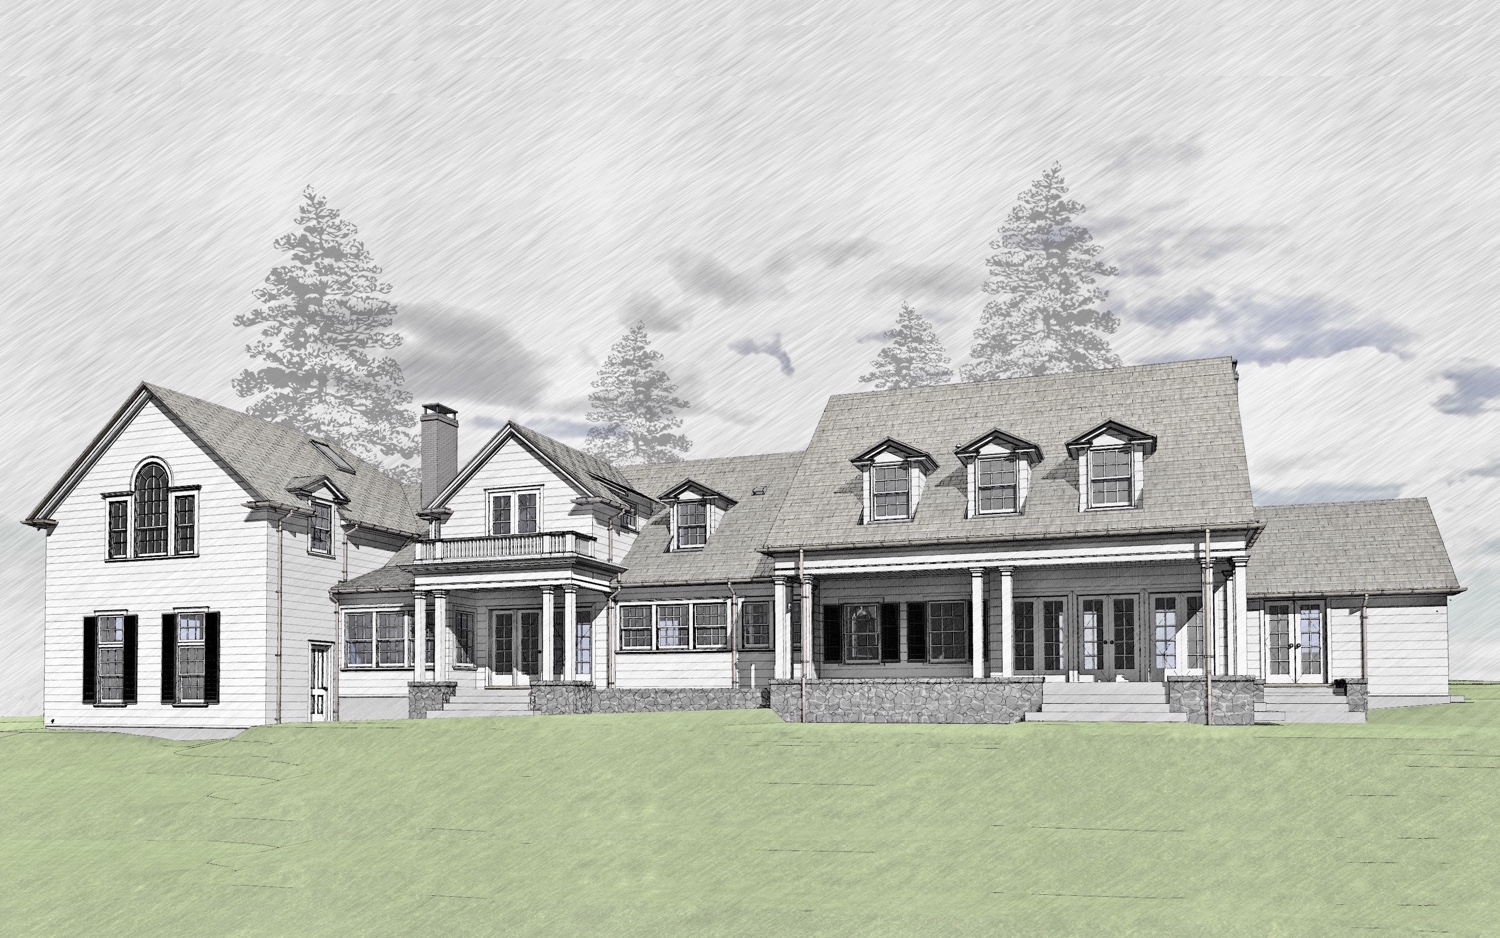 Architectural rendering for a renovation of a colonial revival home in Washington County, Oregon by Cella Architecture